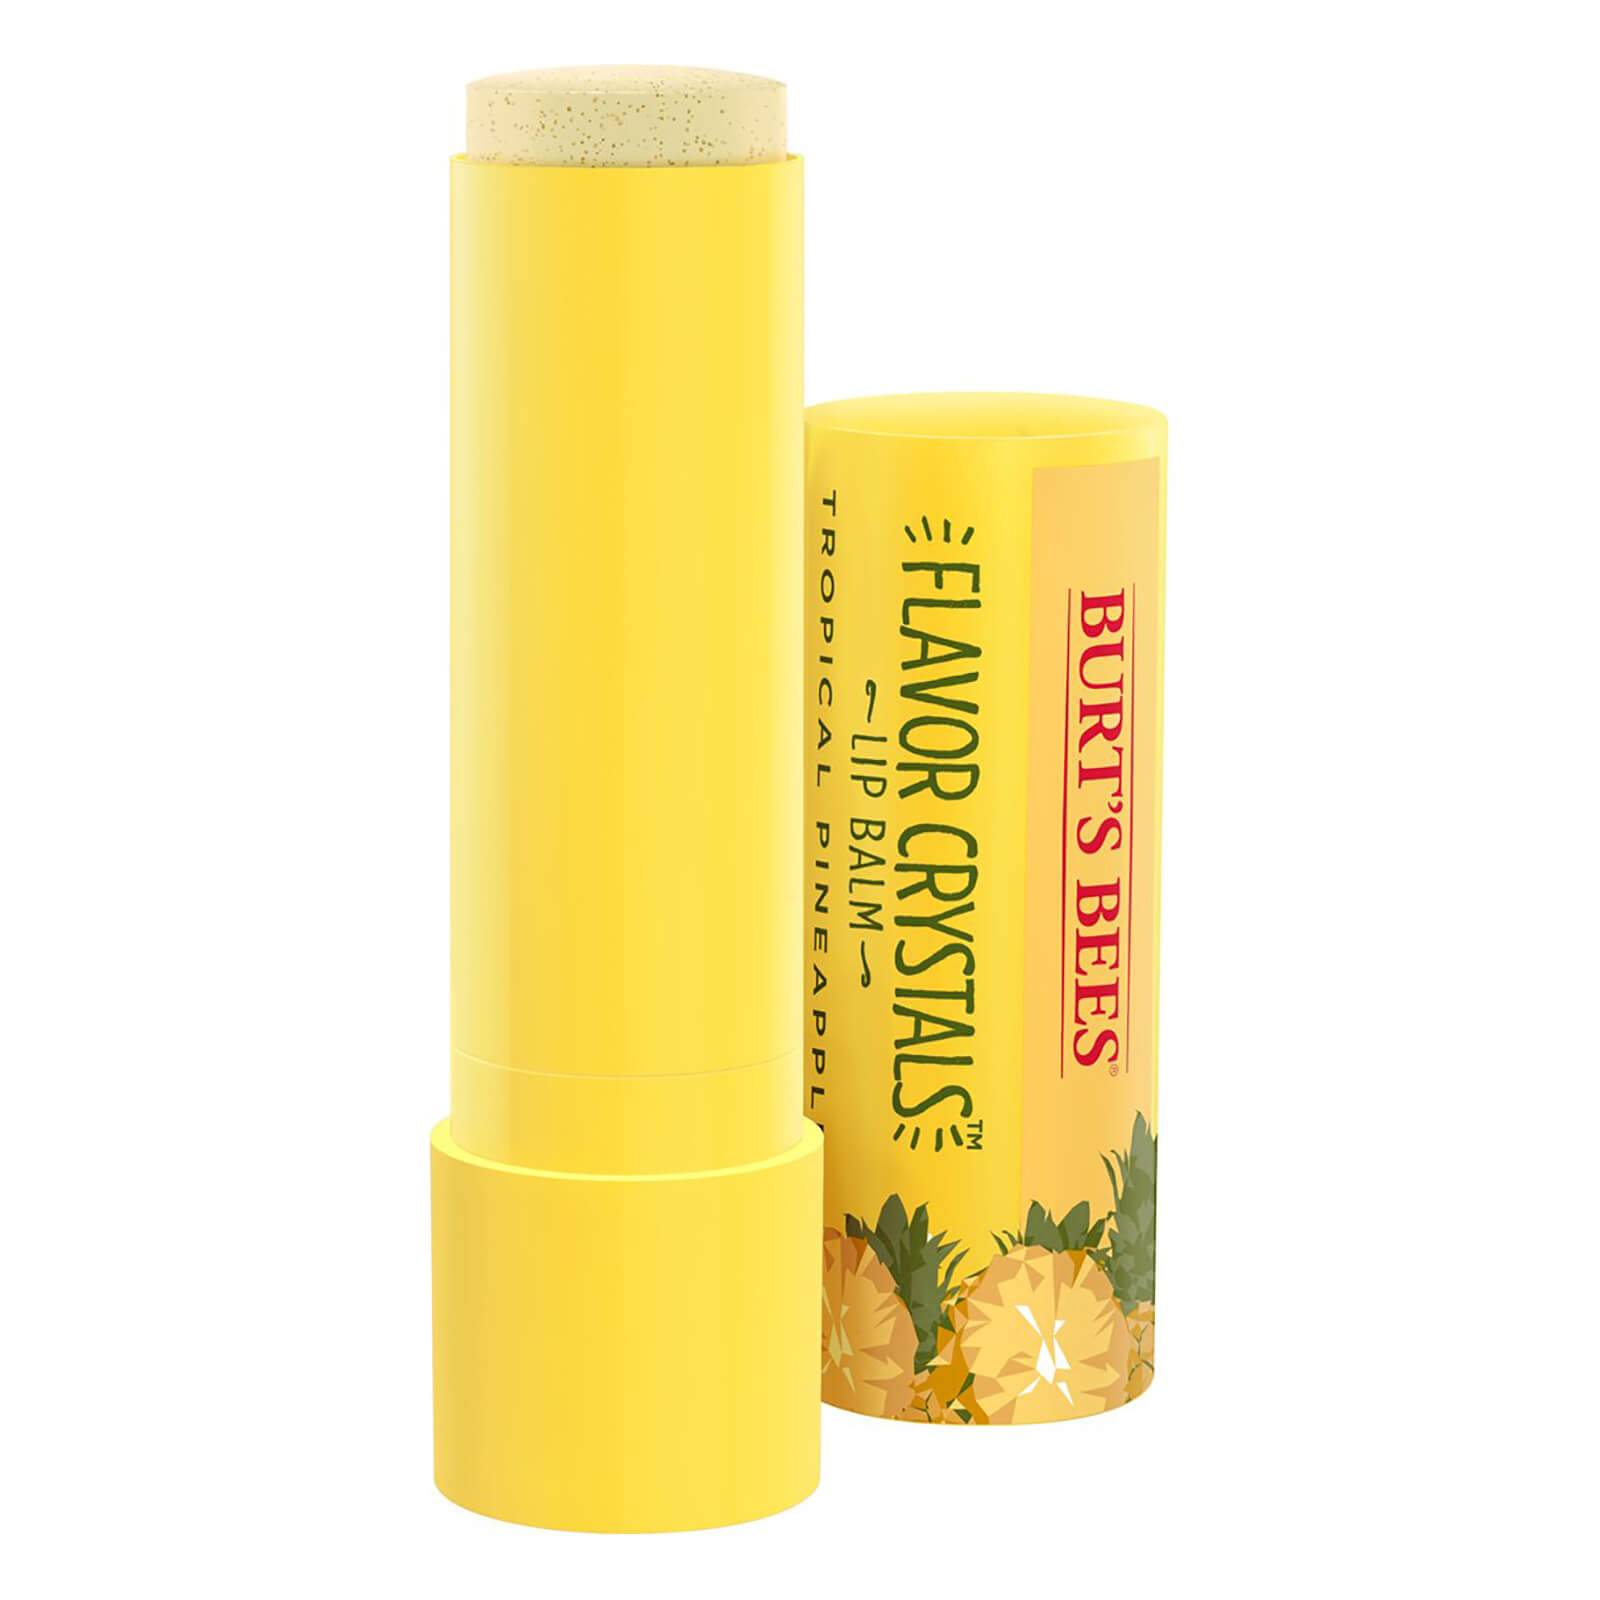 Burts Bees Flavour Crystals 100% Natural Moisturising Lip Balm - Tropical Pineapple 4.53g